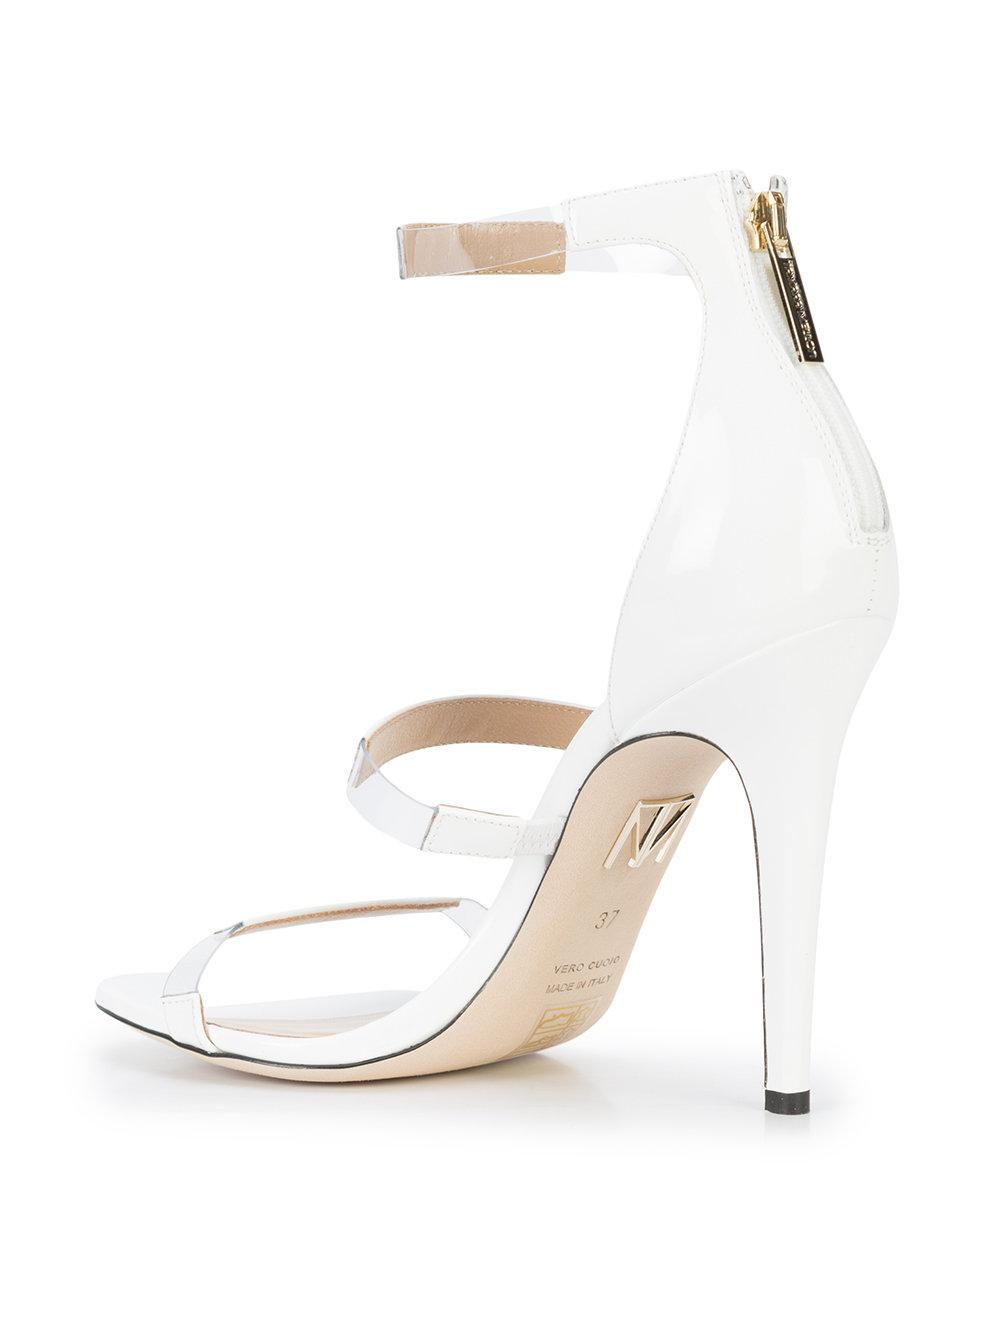 Tamara Mellon Strappy stiletto round toe sandals TogwmR